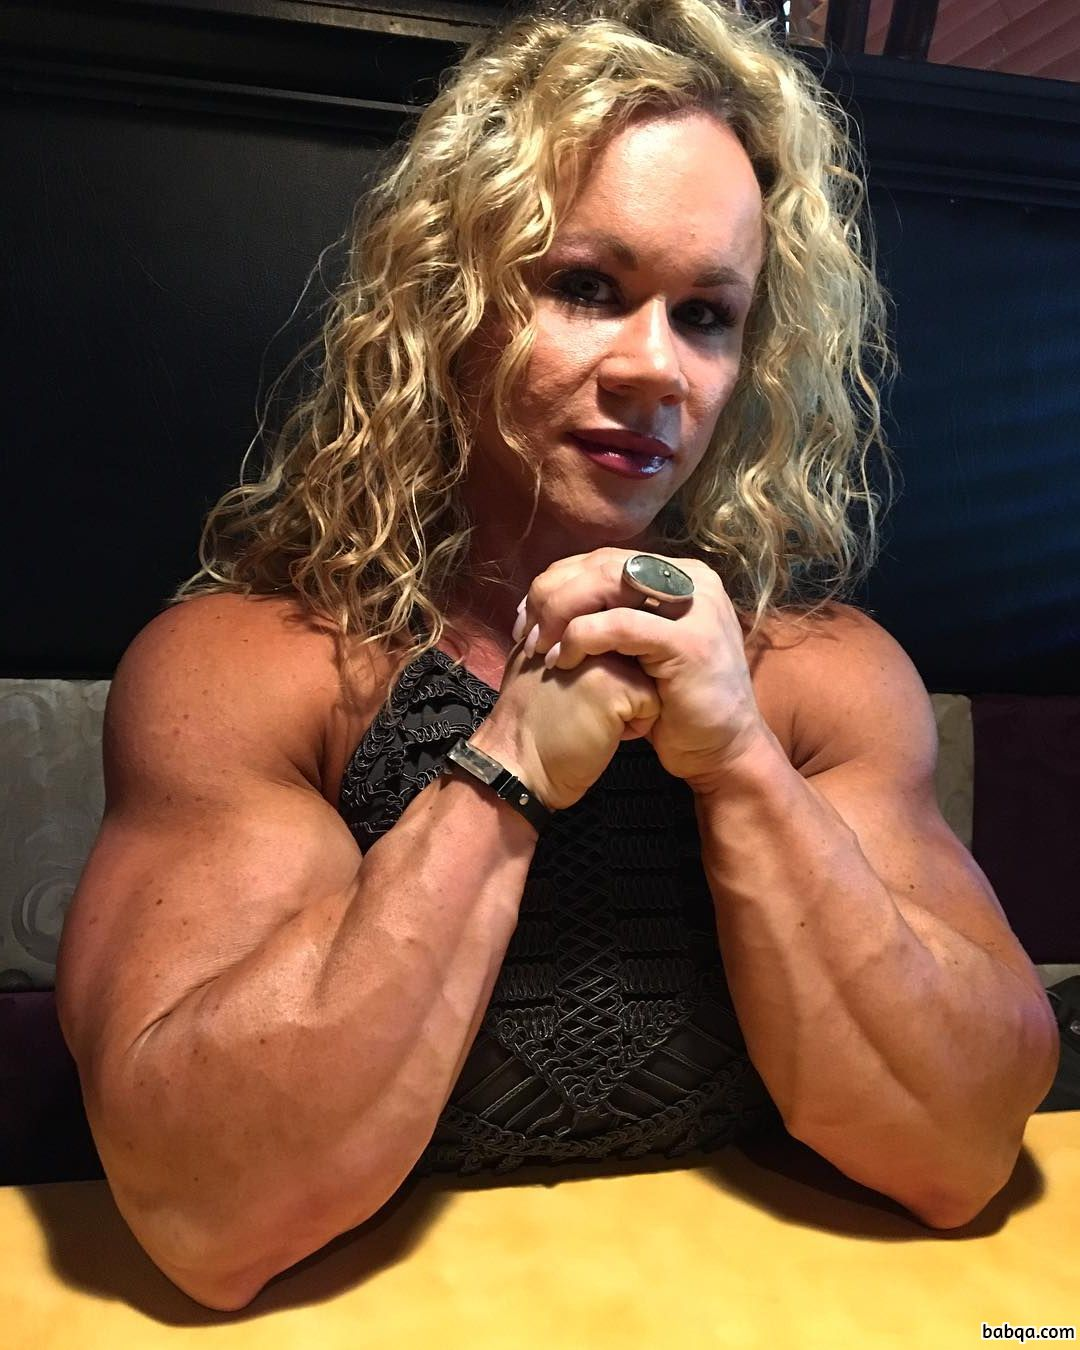 sexy lady with strong body and muscle legs photo from linkedin